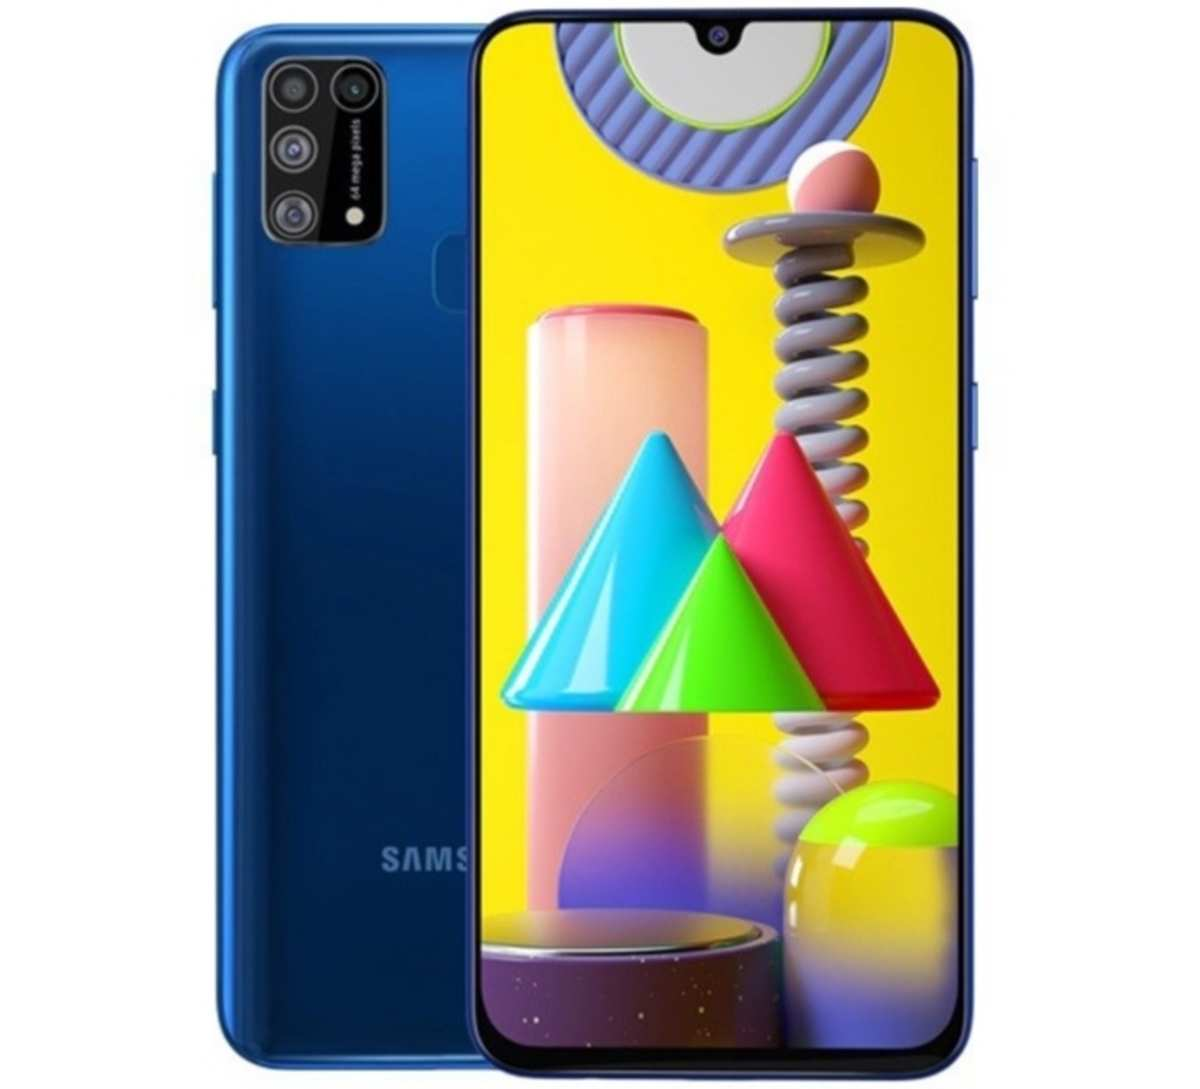 Samsung Galaxy M31, Samsung Galaxy M31 specs & price in Nigeria